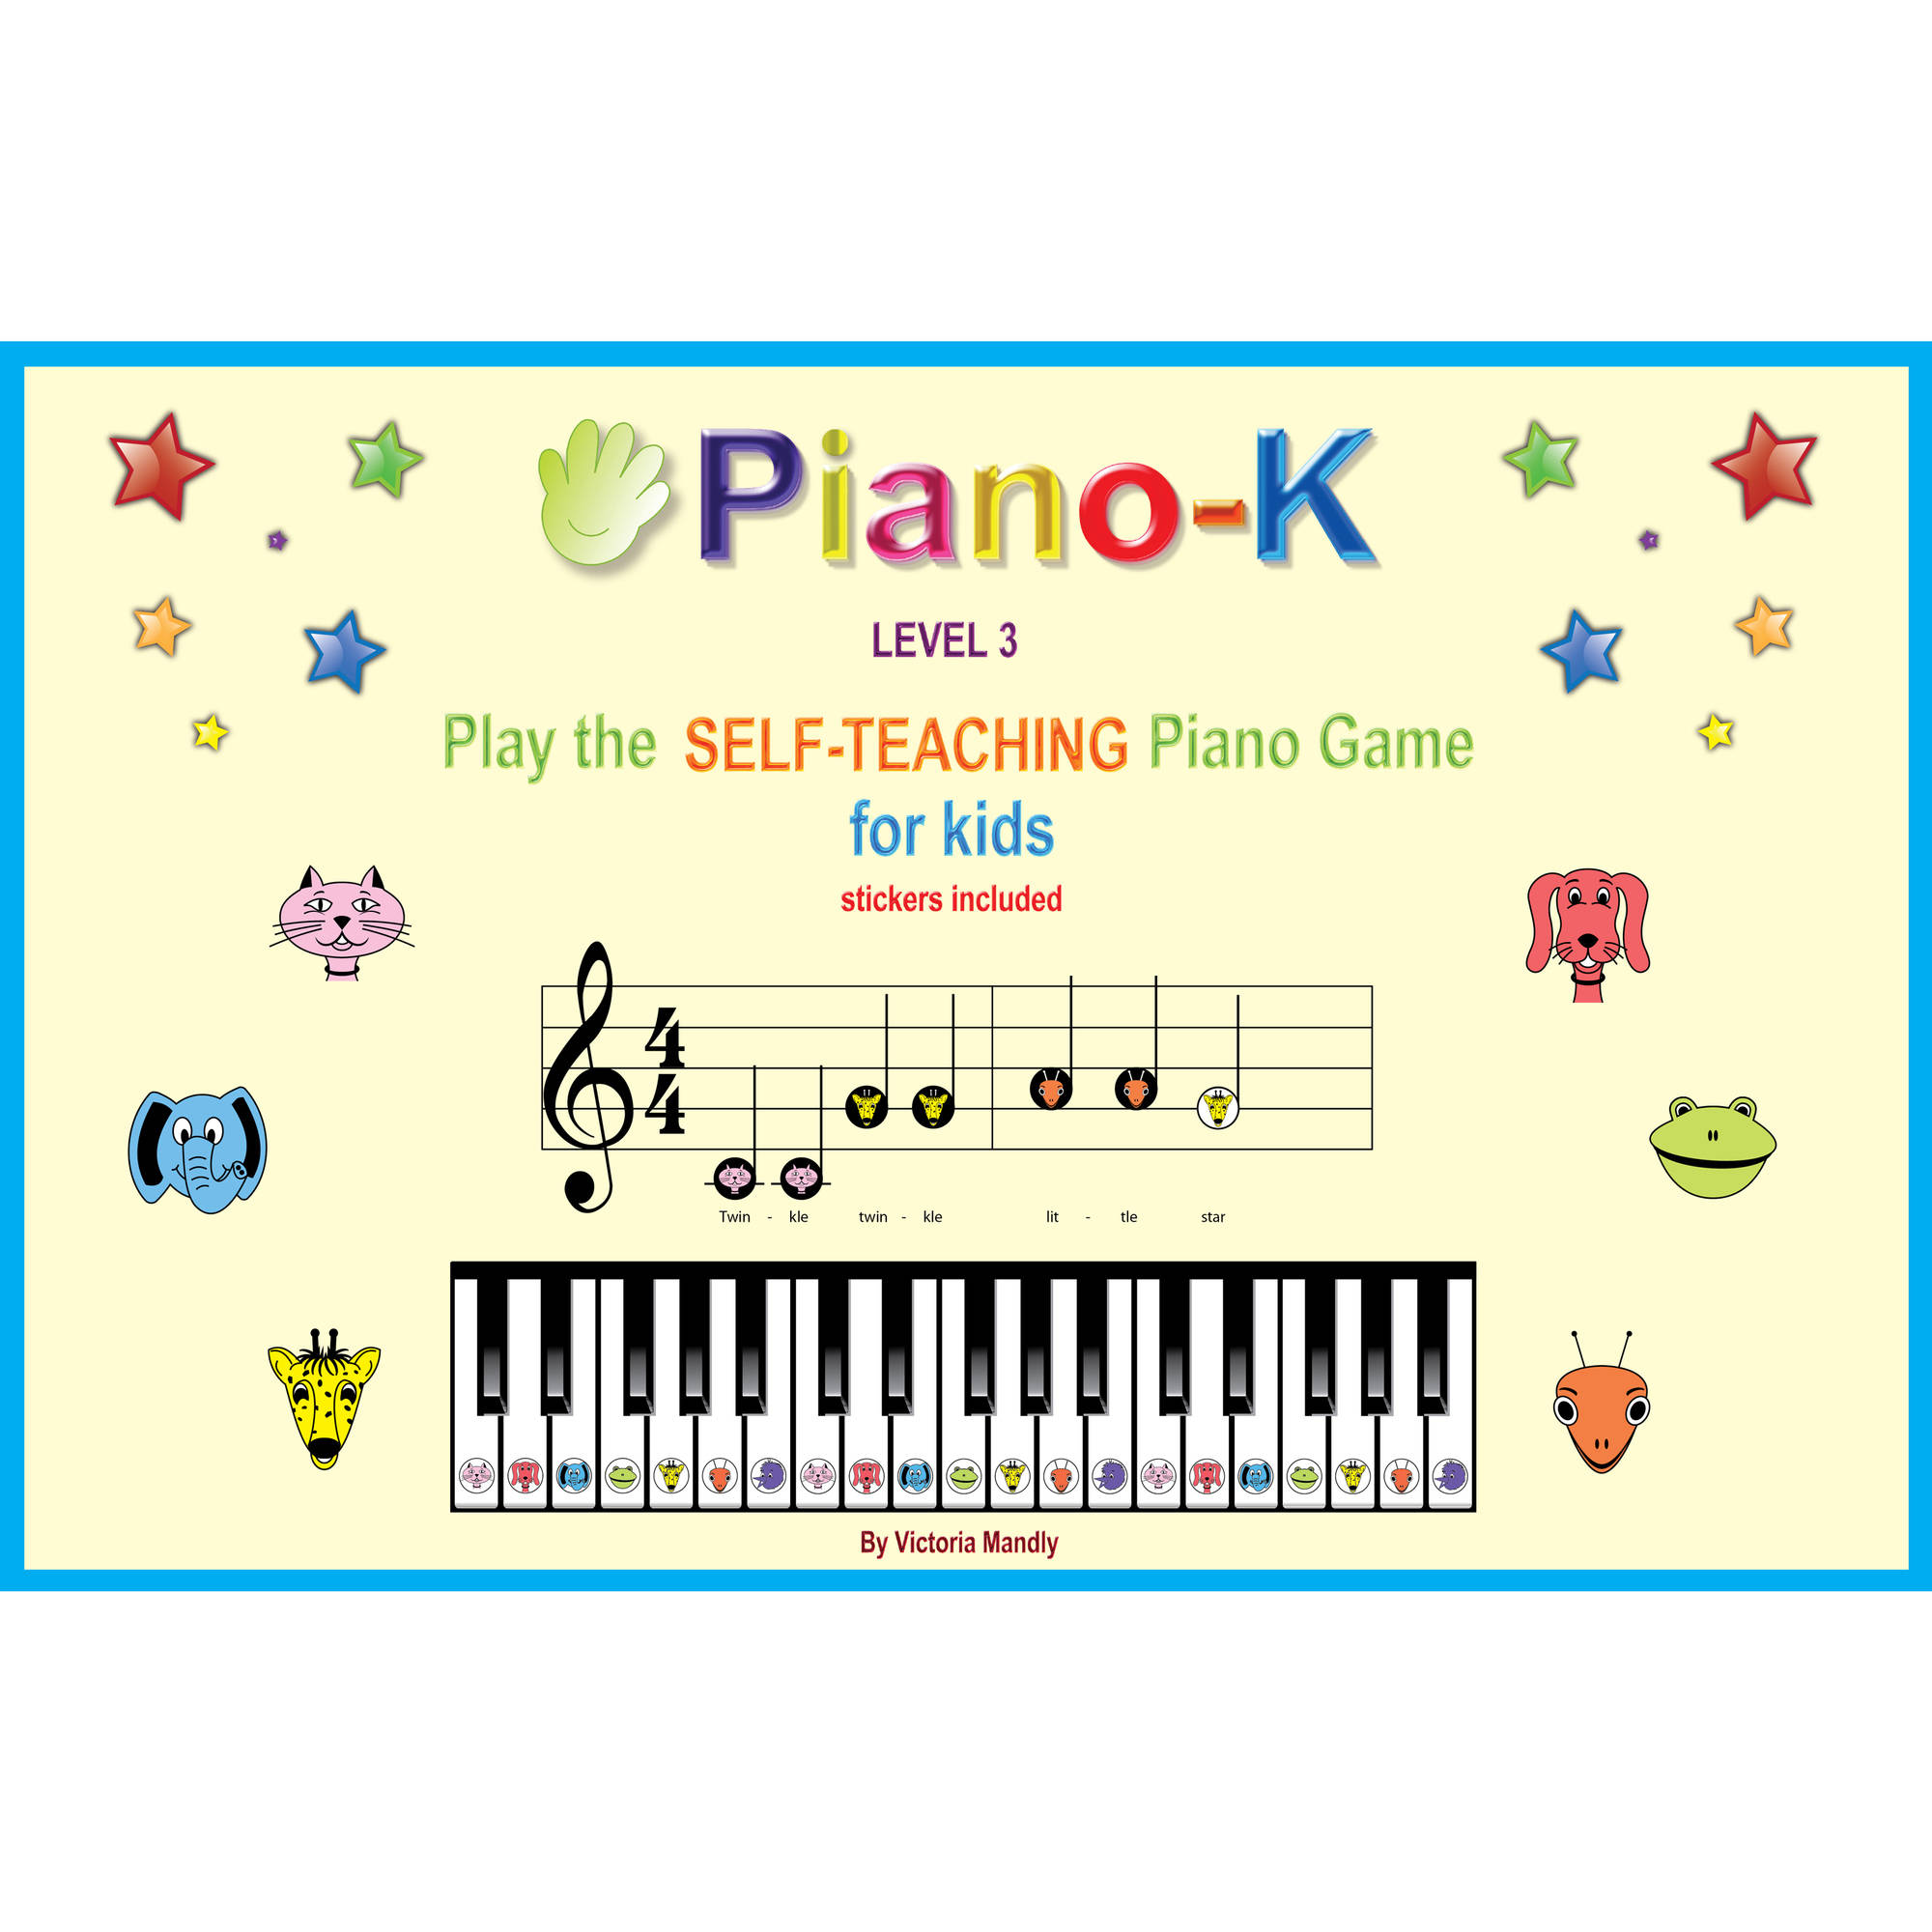 Piano-K Play the Self-teaching Piano Game for Kids, Level 3